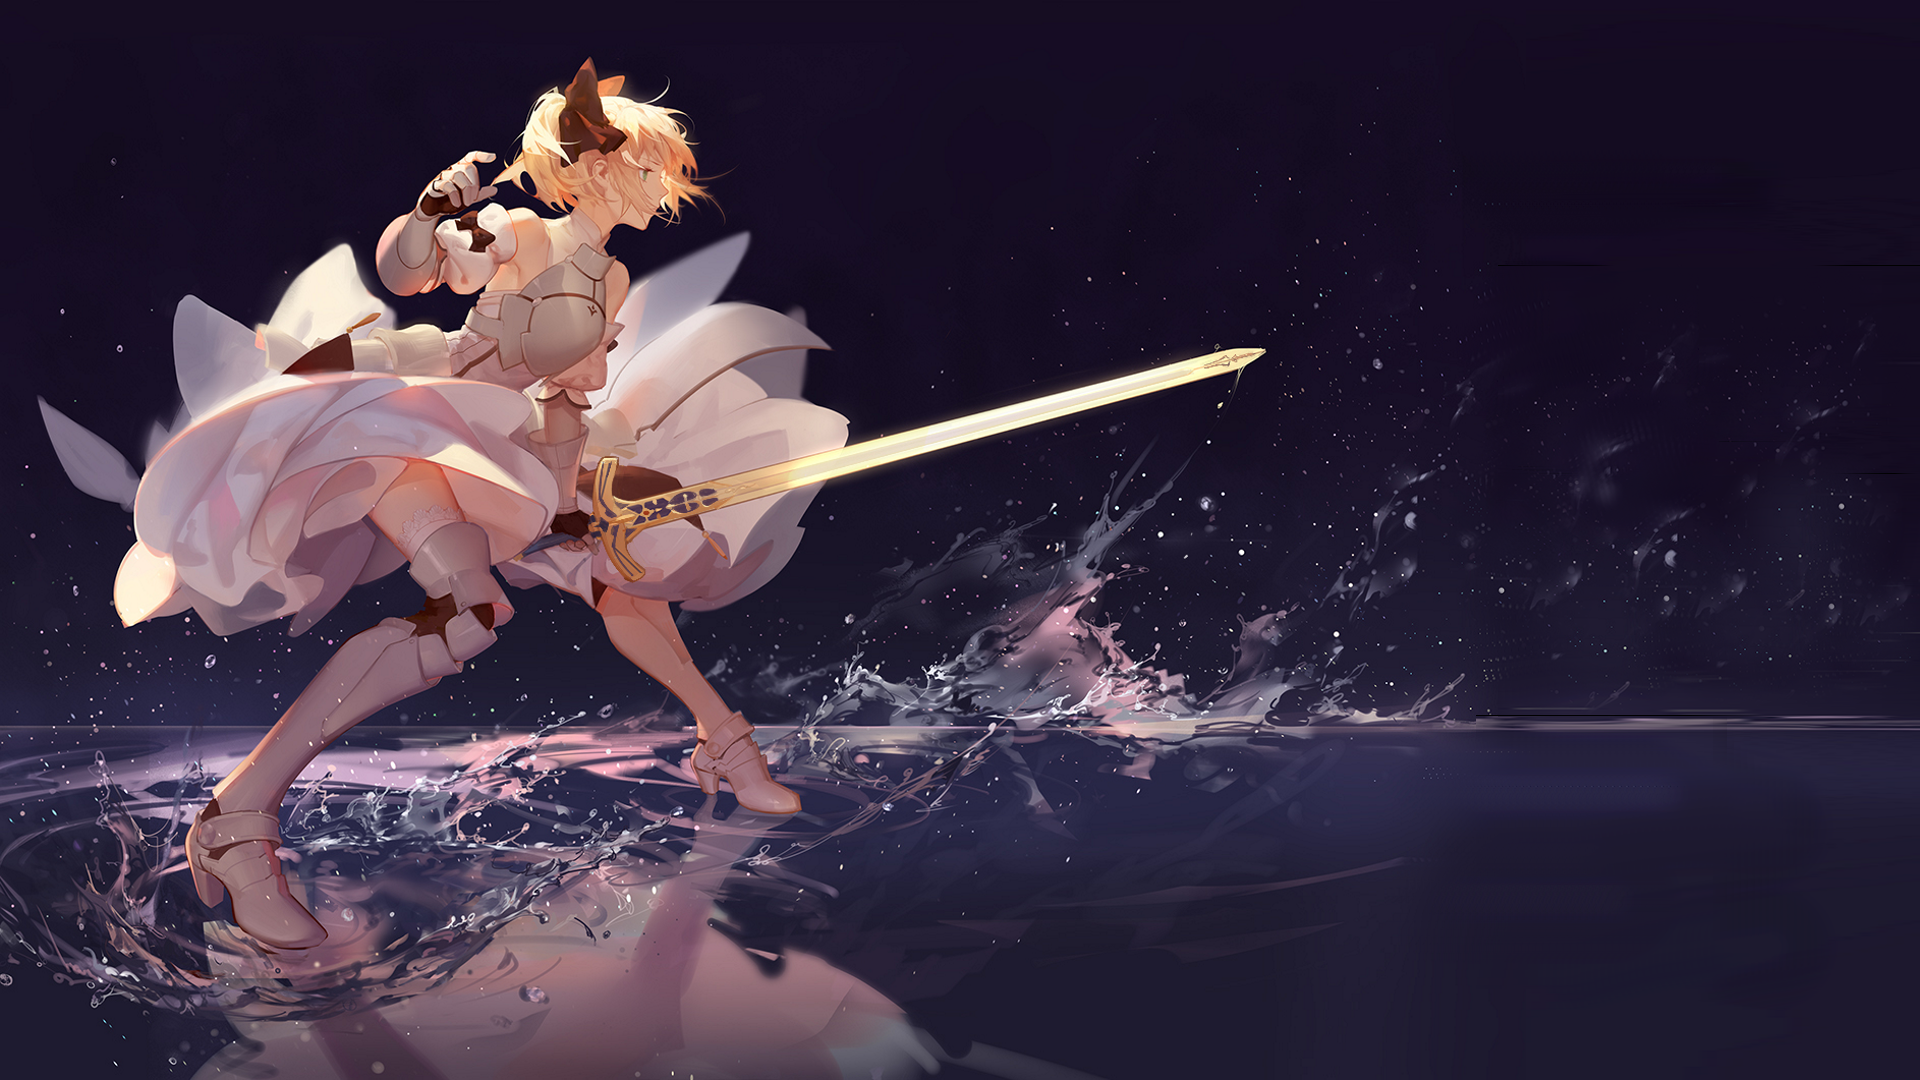 800x1280 saber lily nexus 7samsung galaxy tab 10note android saber lily nexus 7samsung galaxy tab 10note android tablets voltagebd Image collections